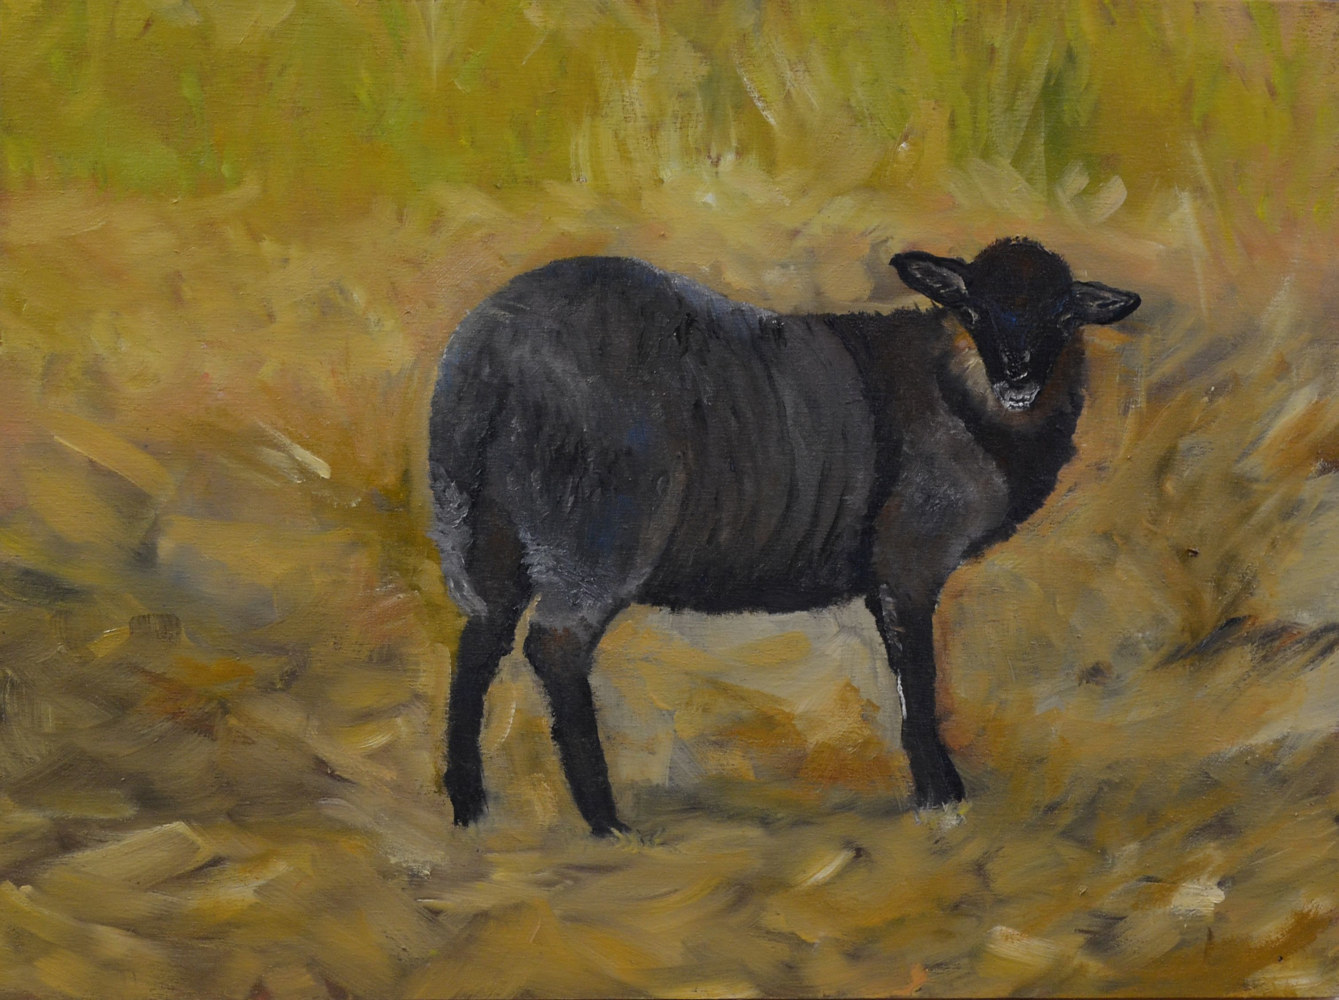 Out in the Field - 12 x 16, oil on profile cradled wood panel - 16-18 by Patricia Savoie